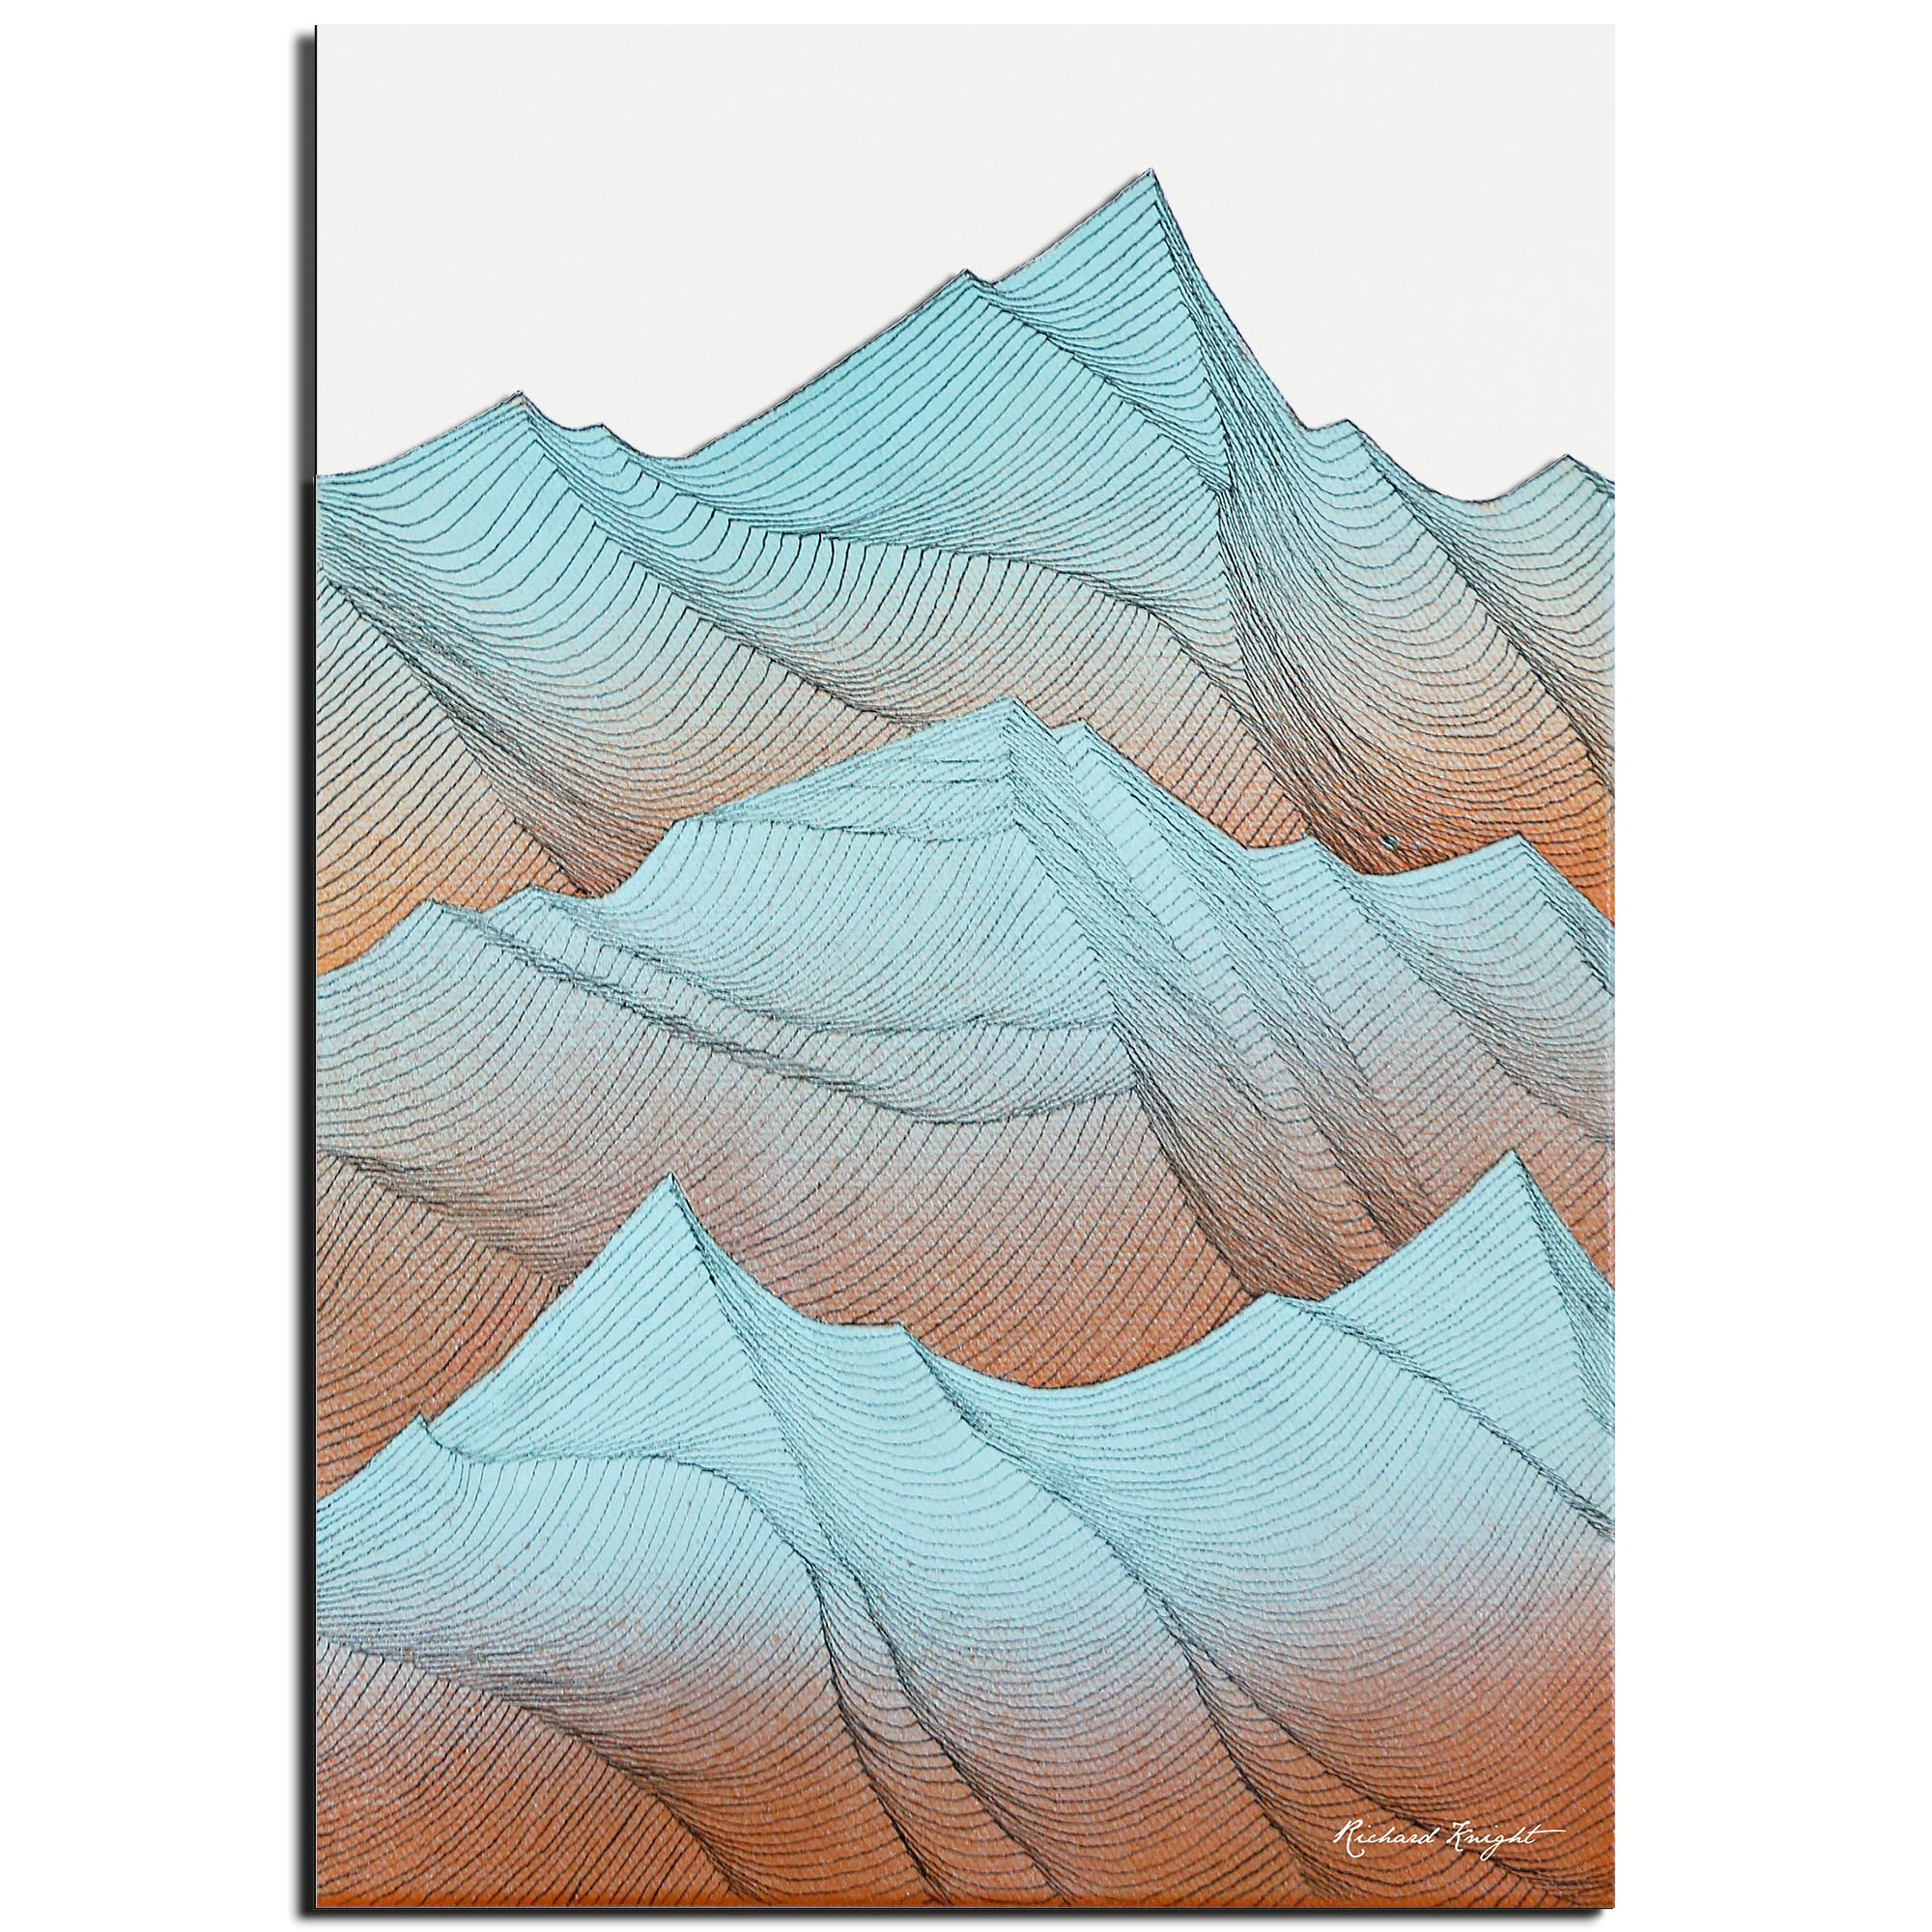 Richard Knight 'Desert Mountains' 22in x 32in Abstract Landscape Art on Polymetal